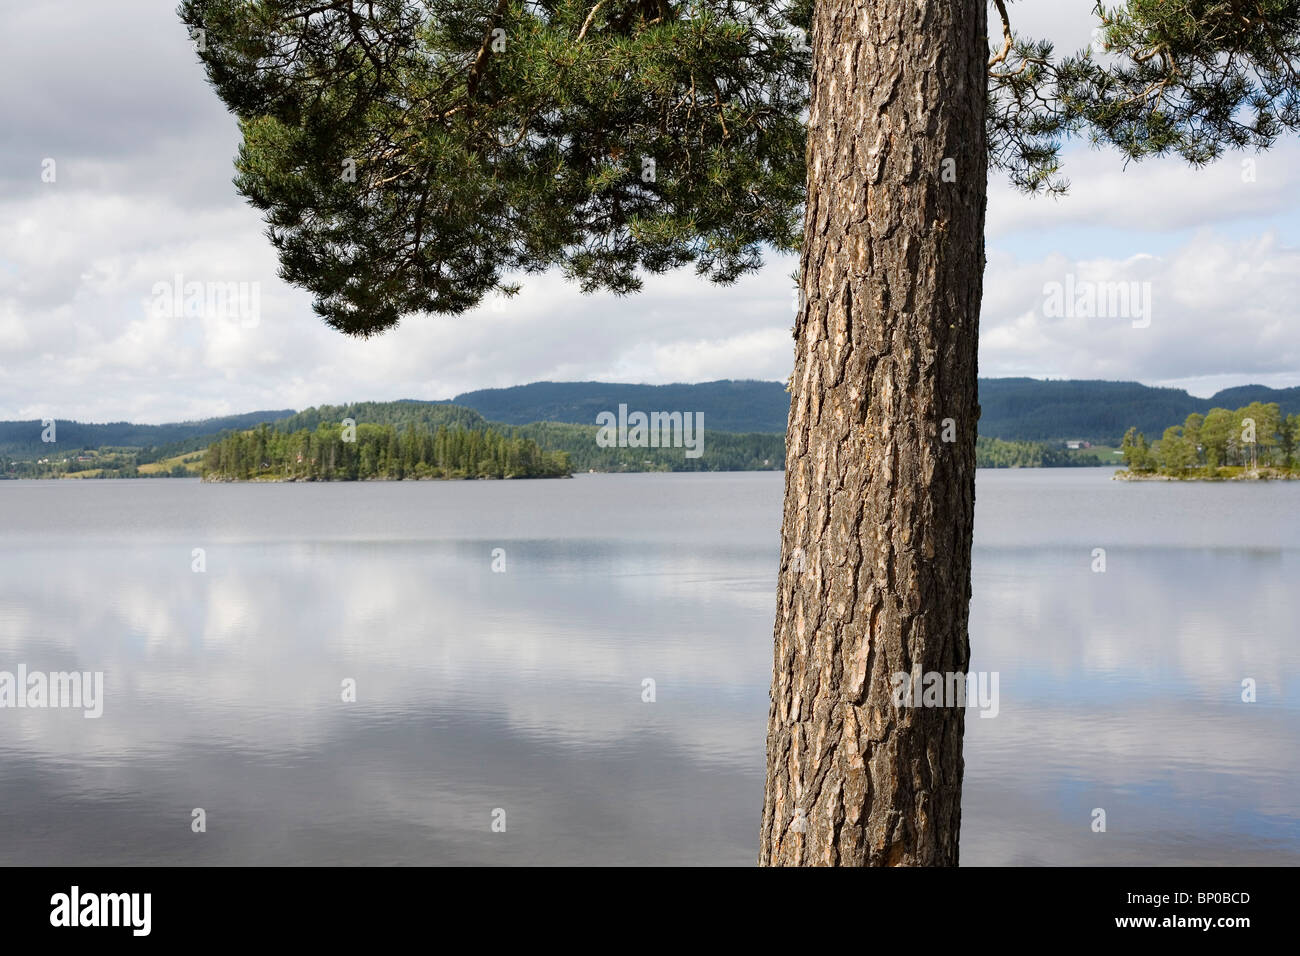 Pine tree by lake - Stock Image